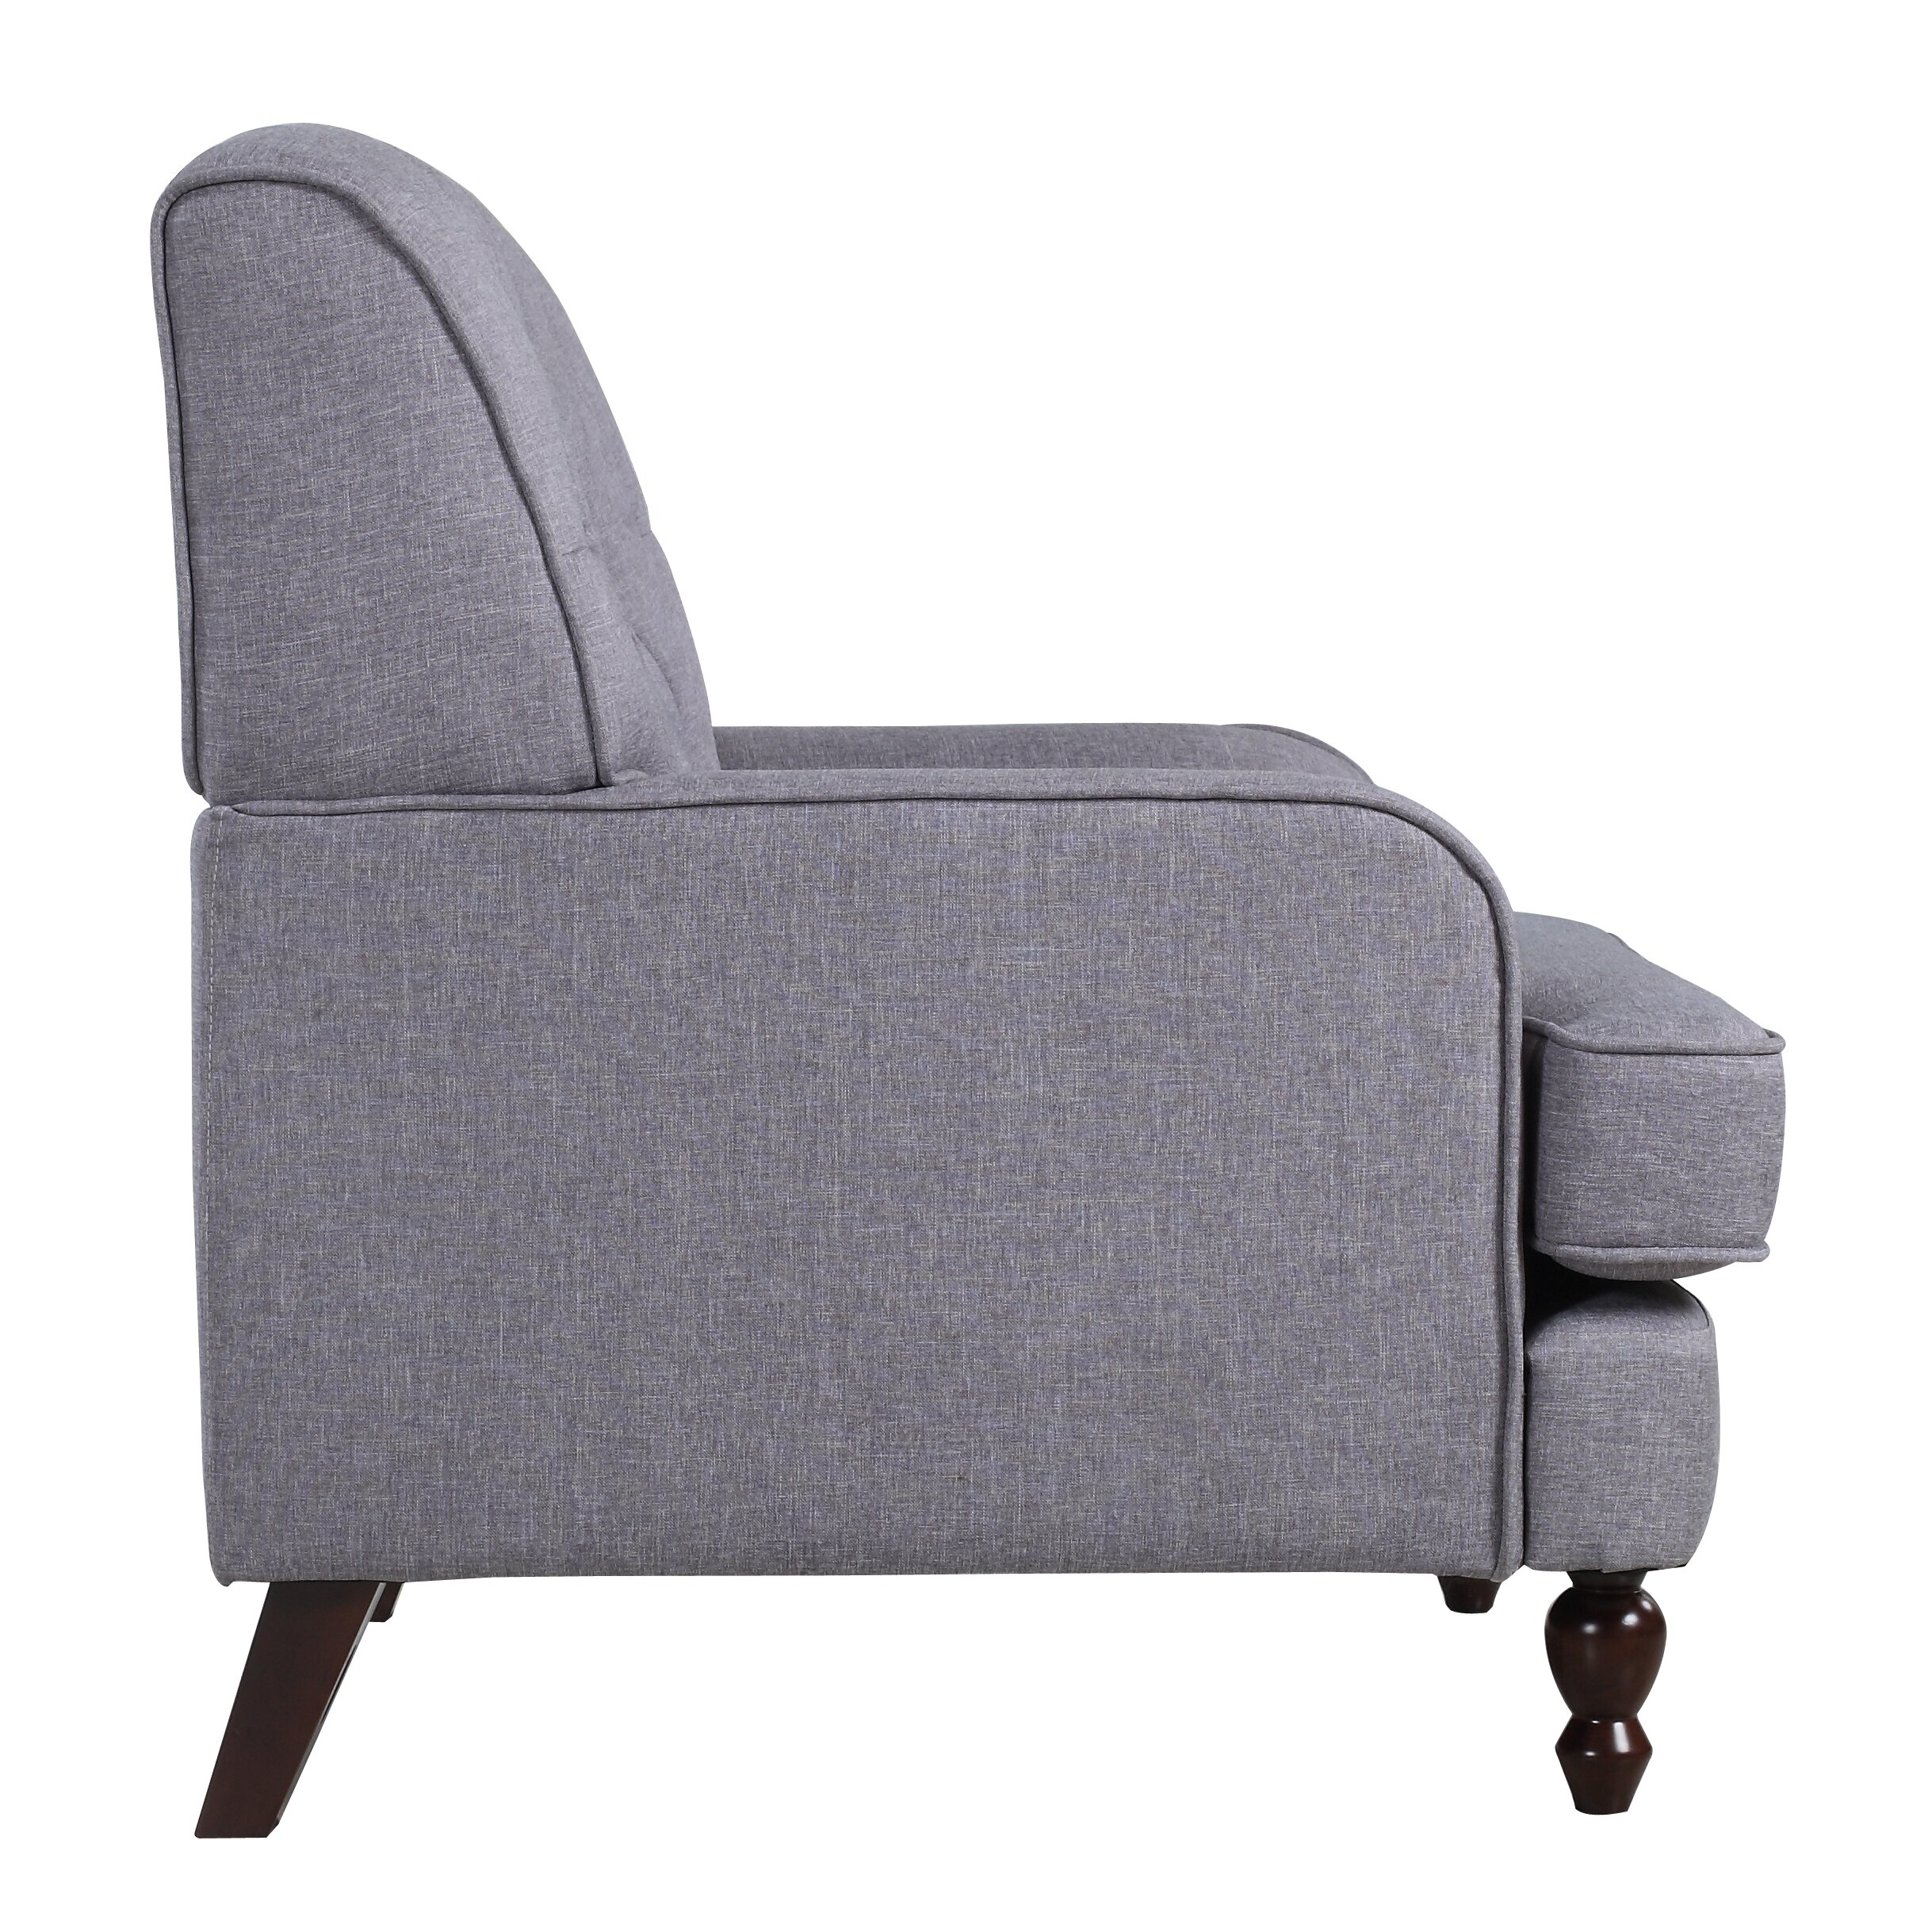 Madison Home USA Modern Tufted Fabric Living Room Arm Chair - Arm chairs living room